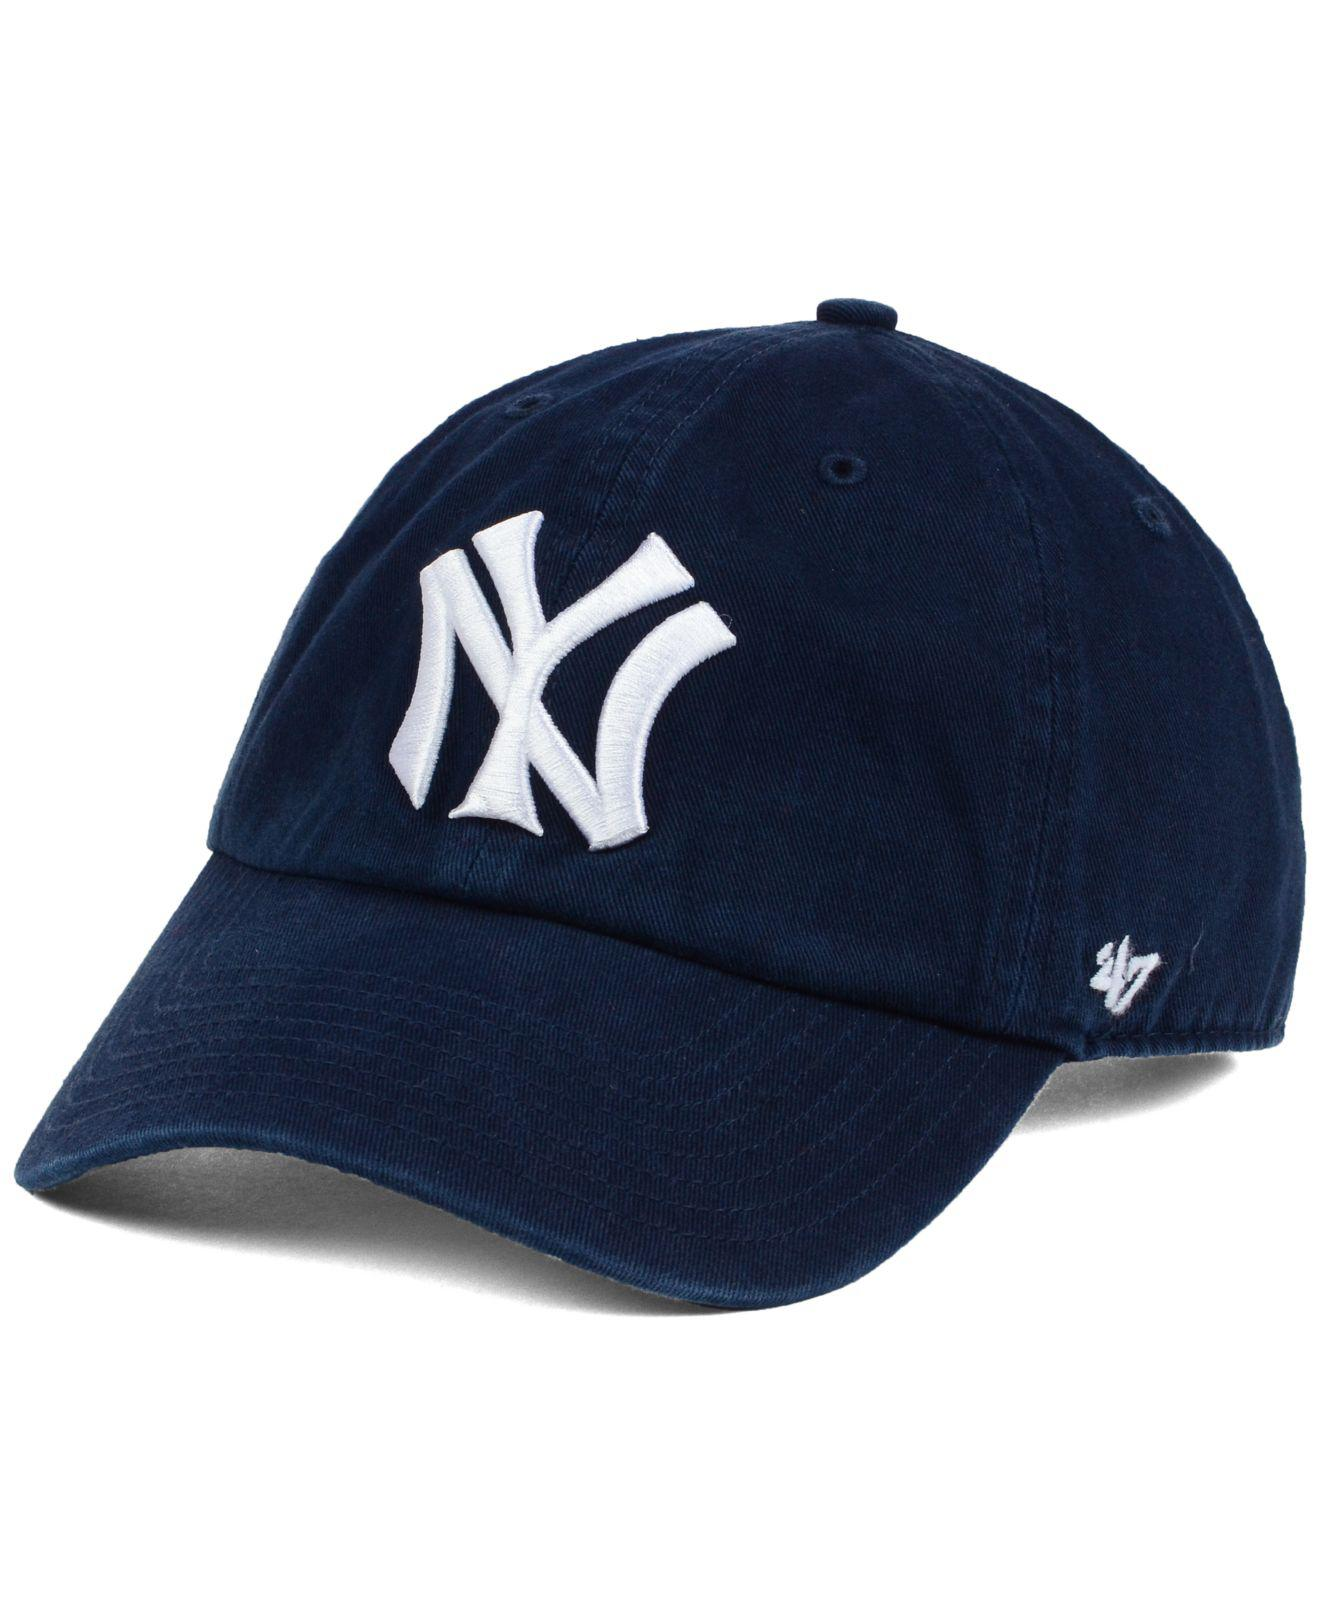 e7b6a7efbf0 Lyst - 47 Brand New York Yankees Cooperstown Clean Up Cap in Blue ...